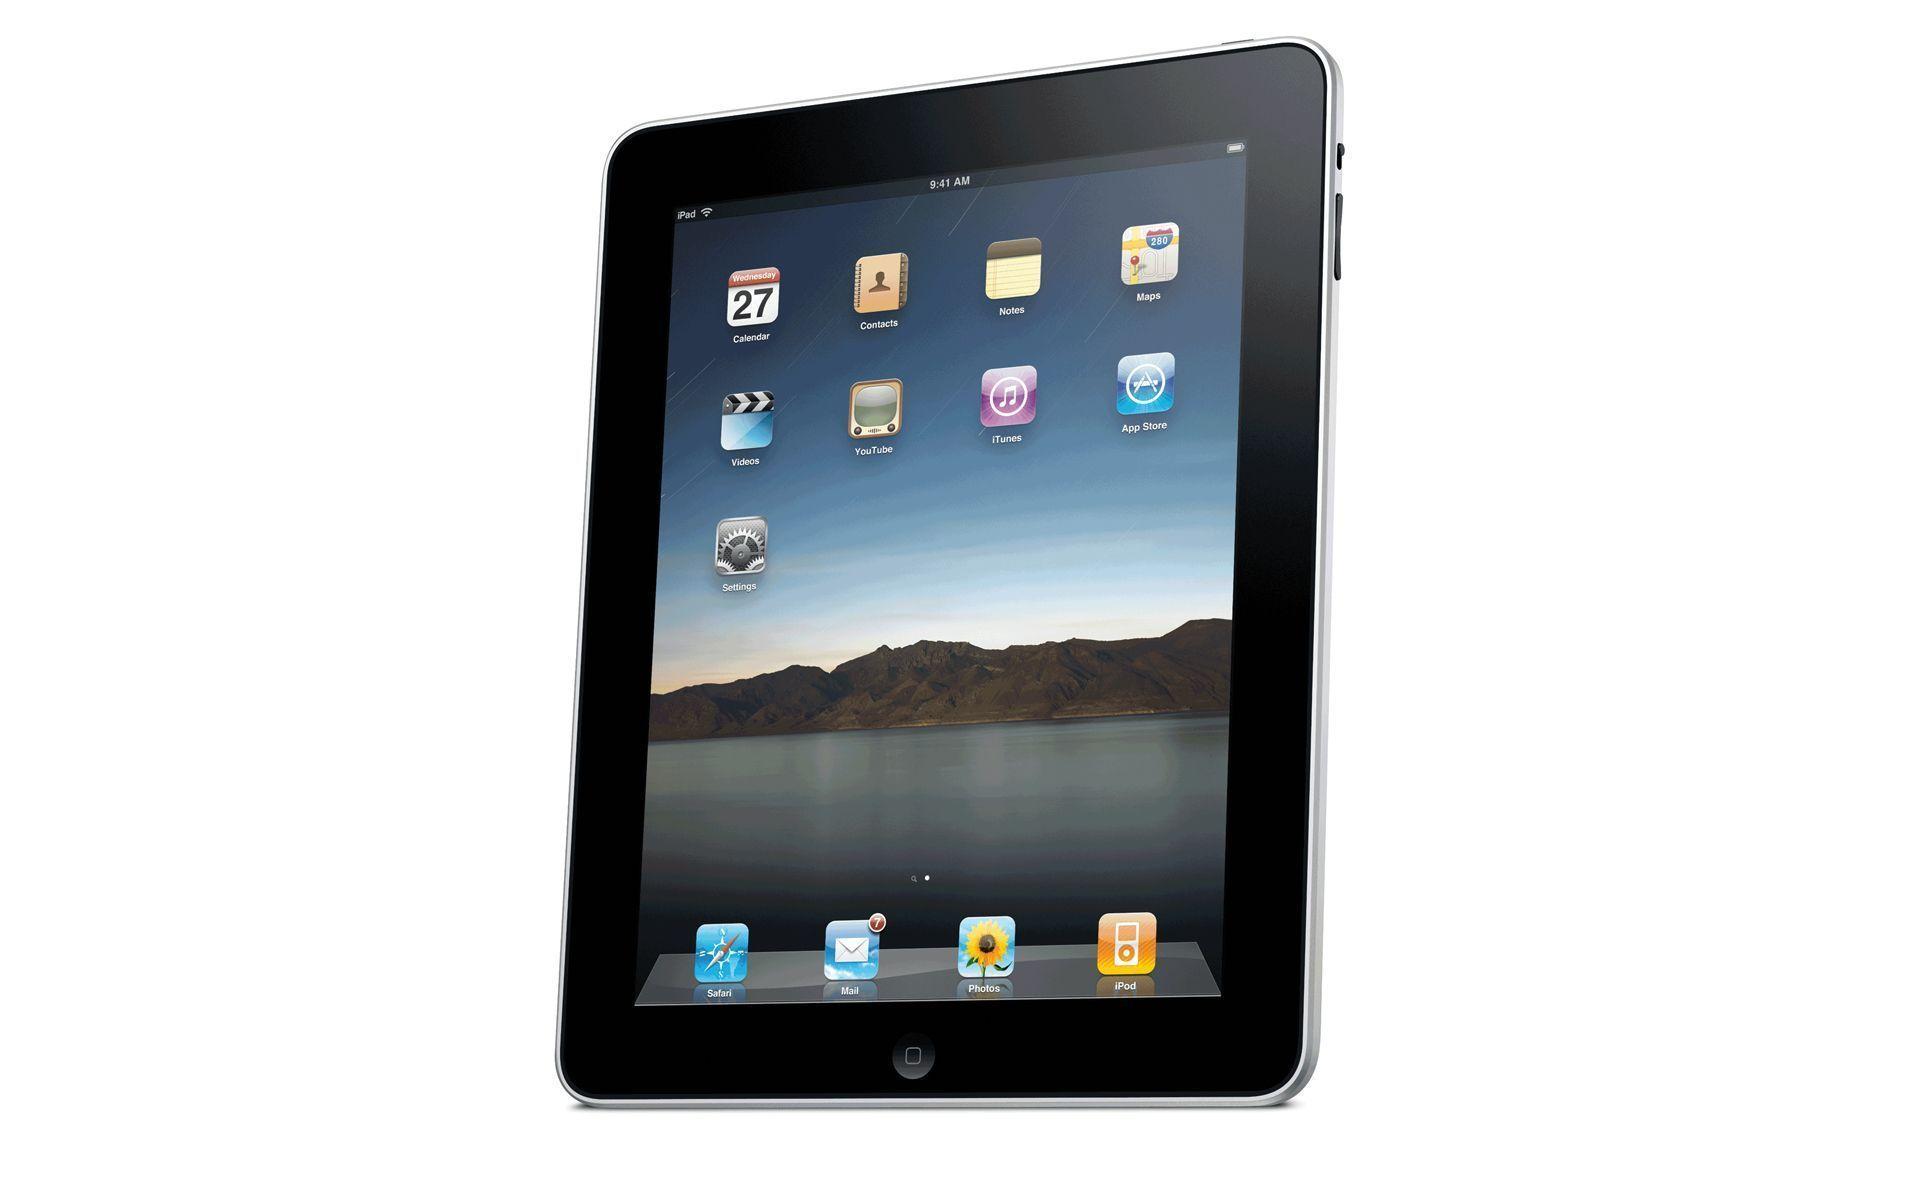 Apple's iPad 2 - Features, Photos and Specifications - The Wondrous ...